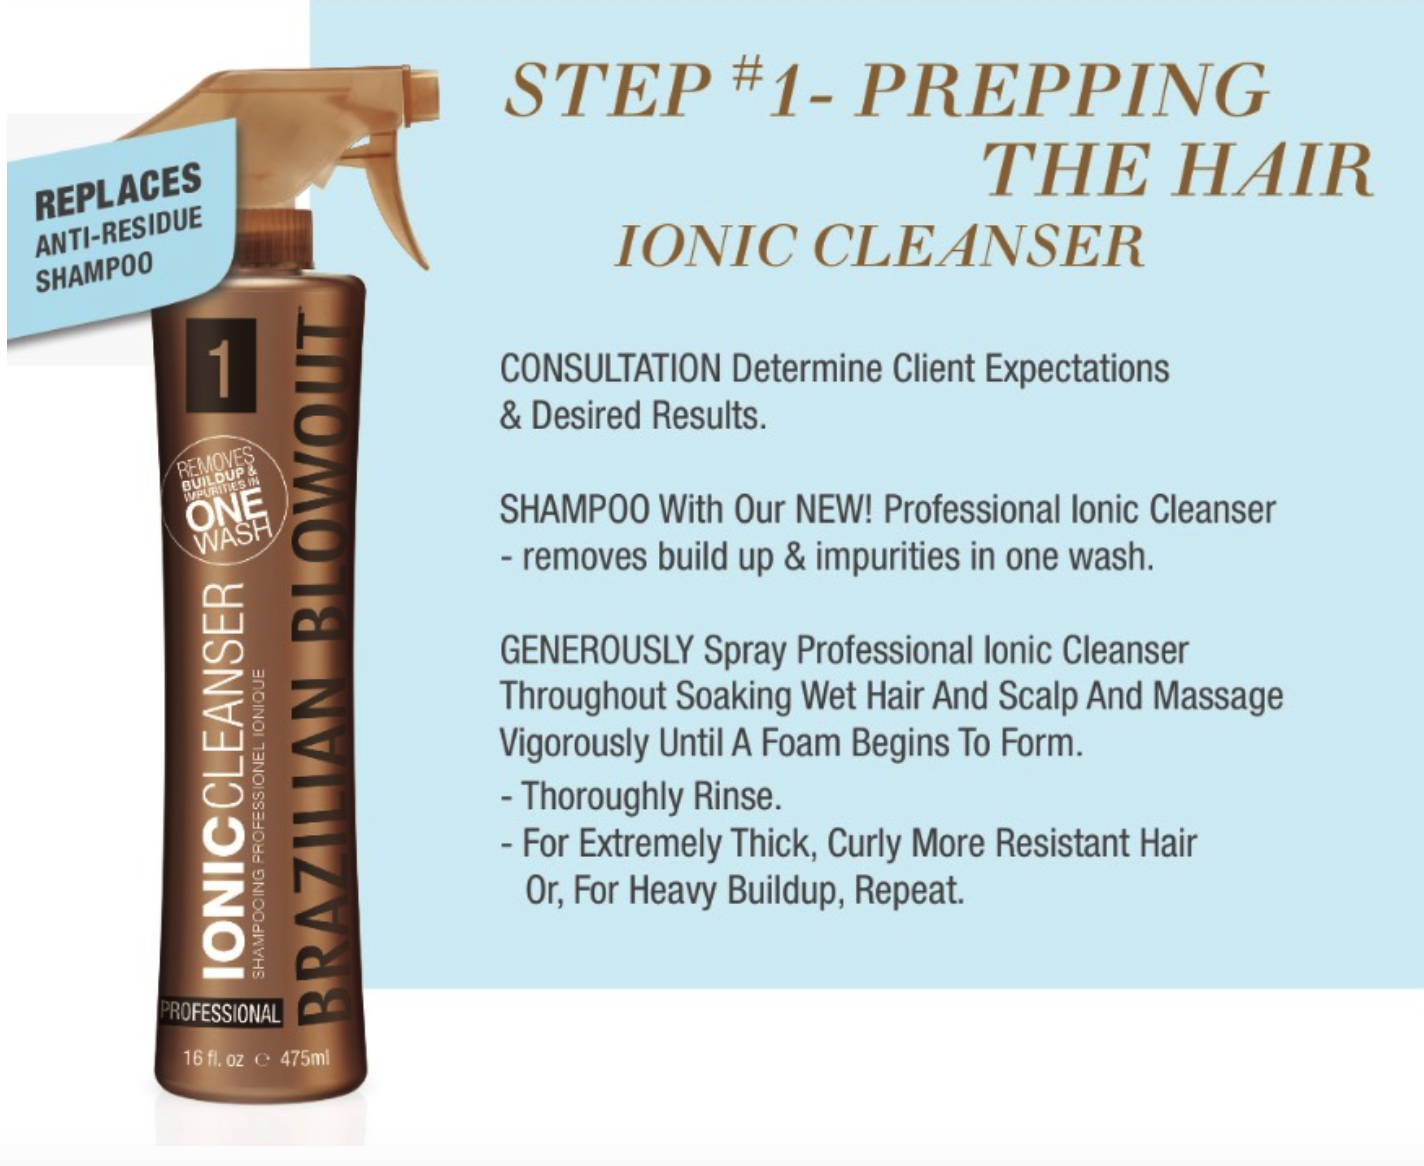 Brazilian Blowout Ionic Cleanser